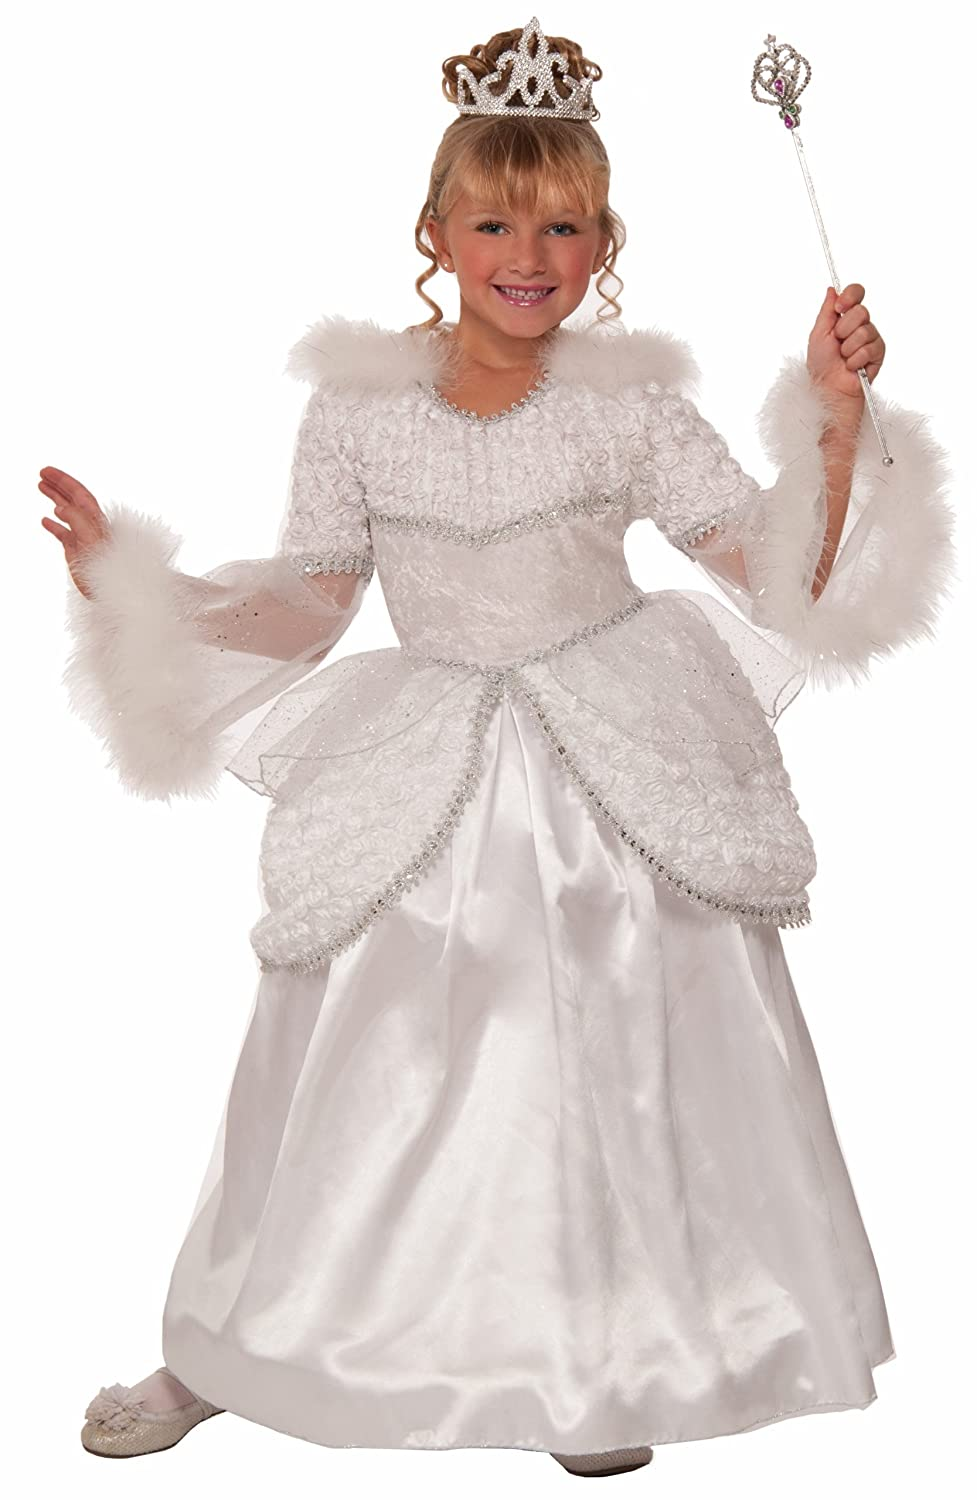 Forum Novelties Designer Collection Deluxe Snow Queen Costume Dress, Child Medium